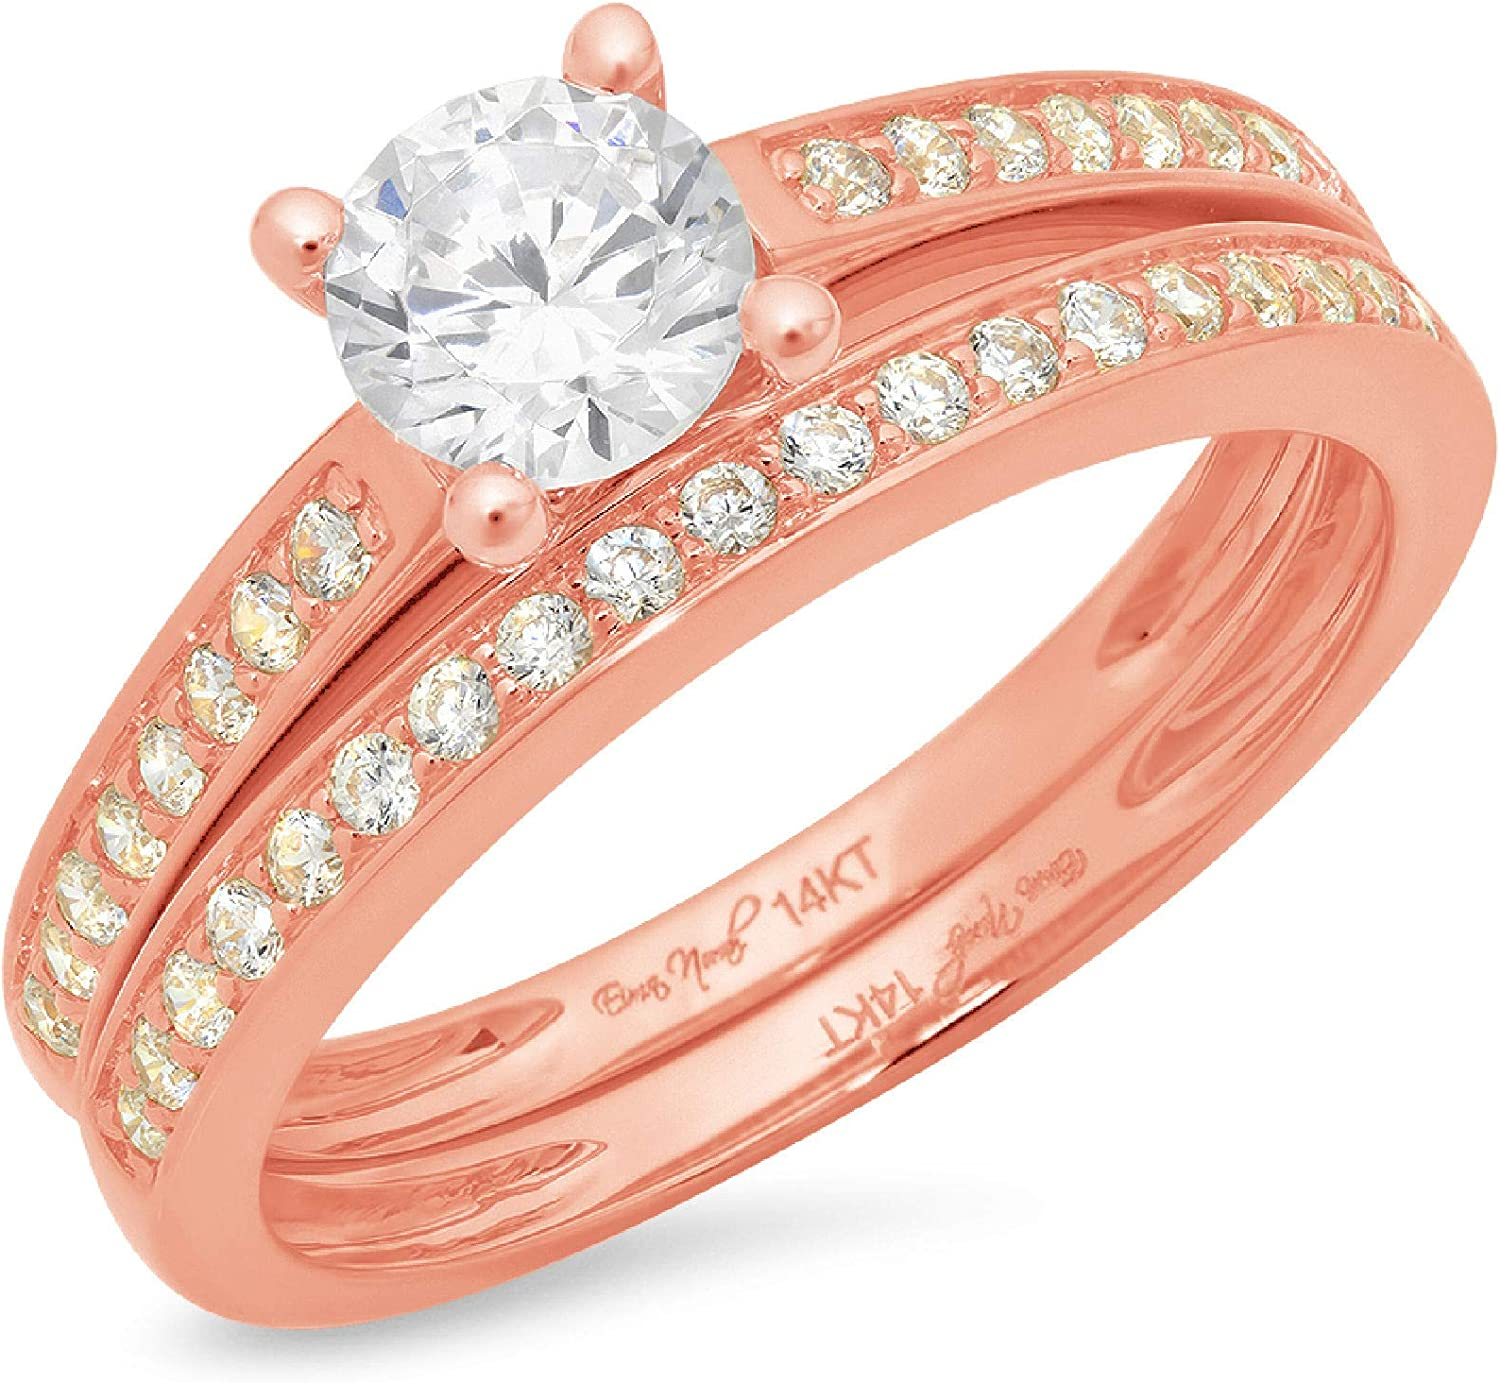 1.14ct Round Cut Pave Solitaire with Accent VVS1 Ideal White Clear Simulated Diamond CZ Engagement Promise Designer Anniversary Wedding Bridal ring band set 14k Pink Rose Gold